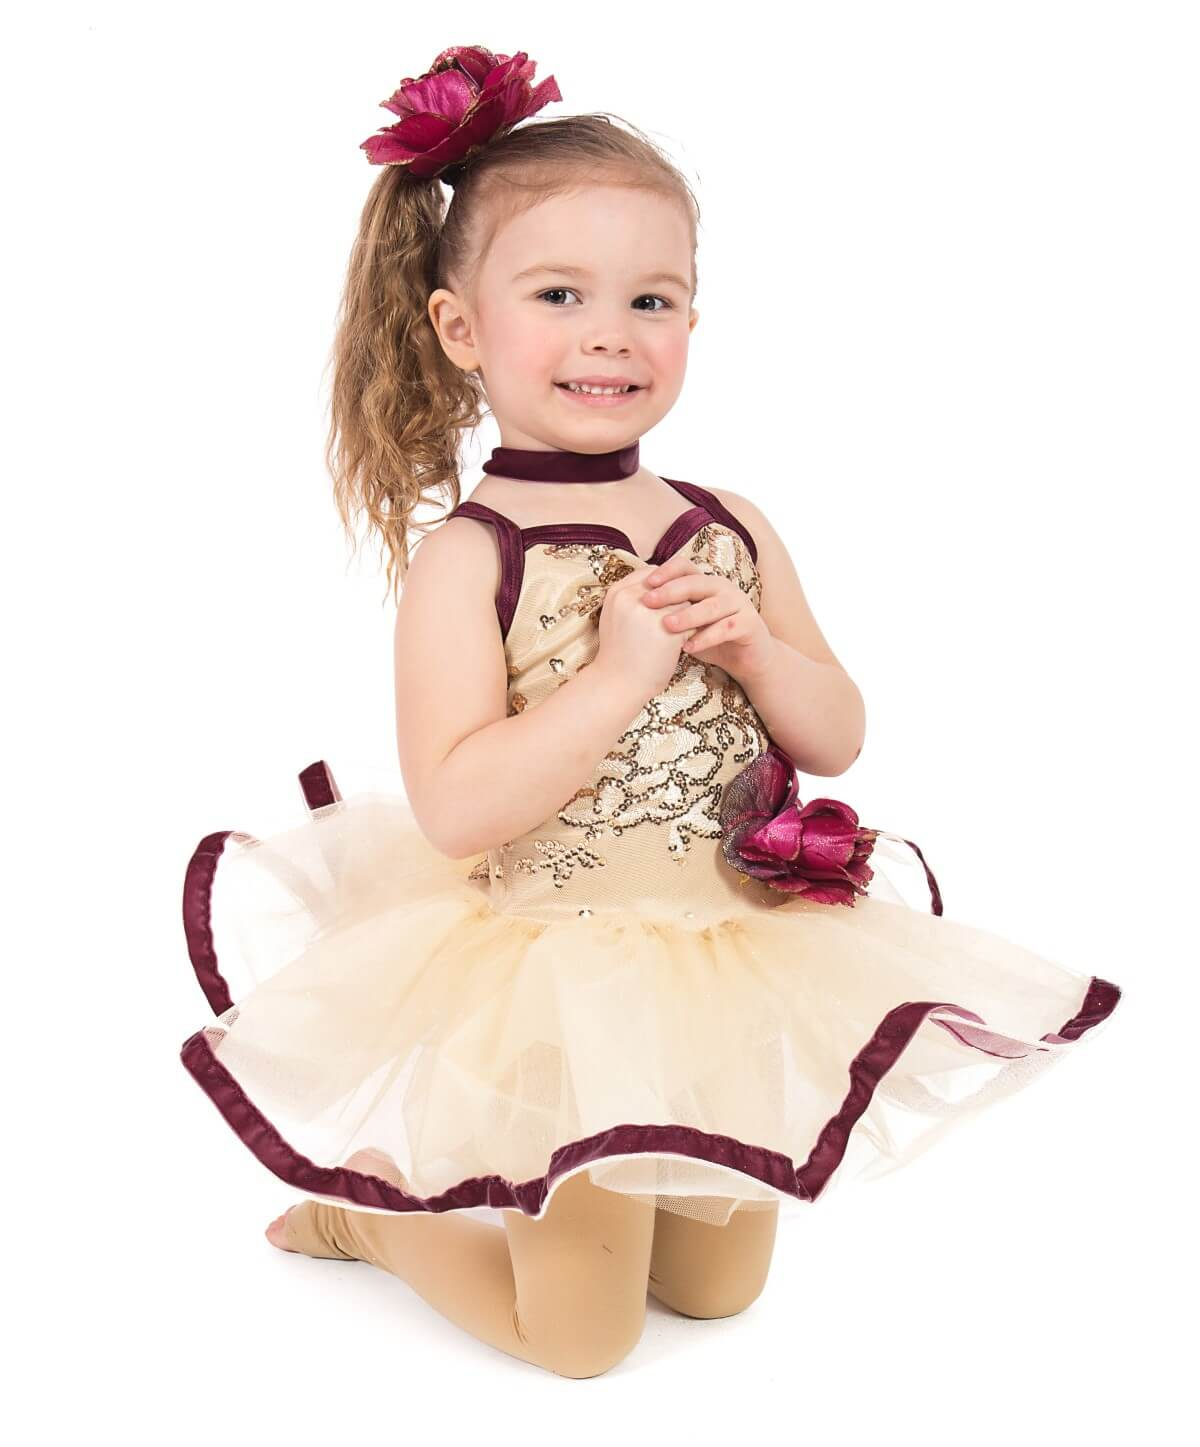 Girl in dance recital outfit